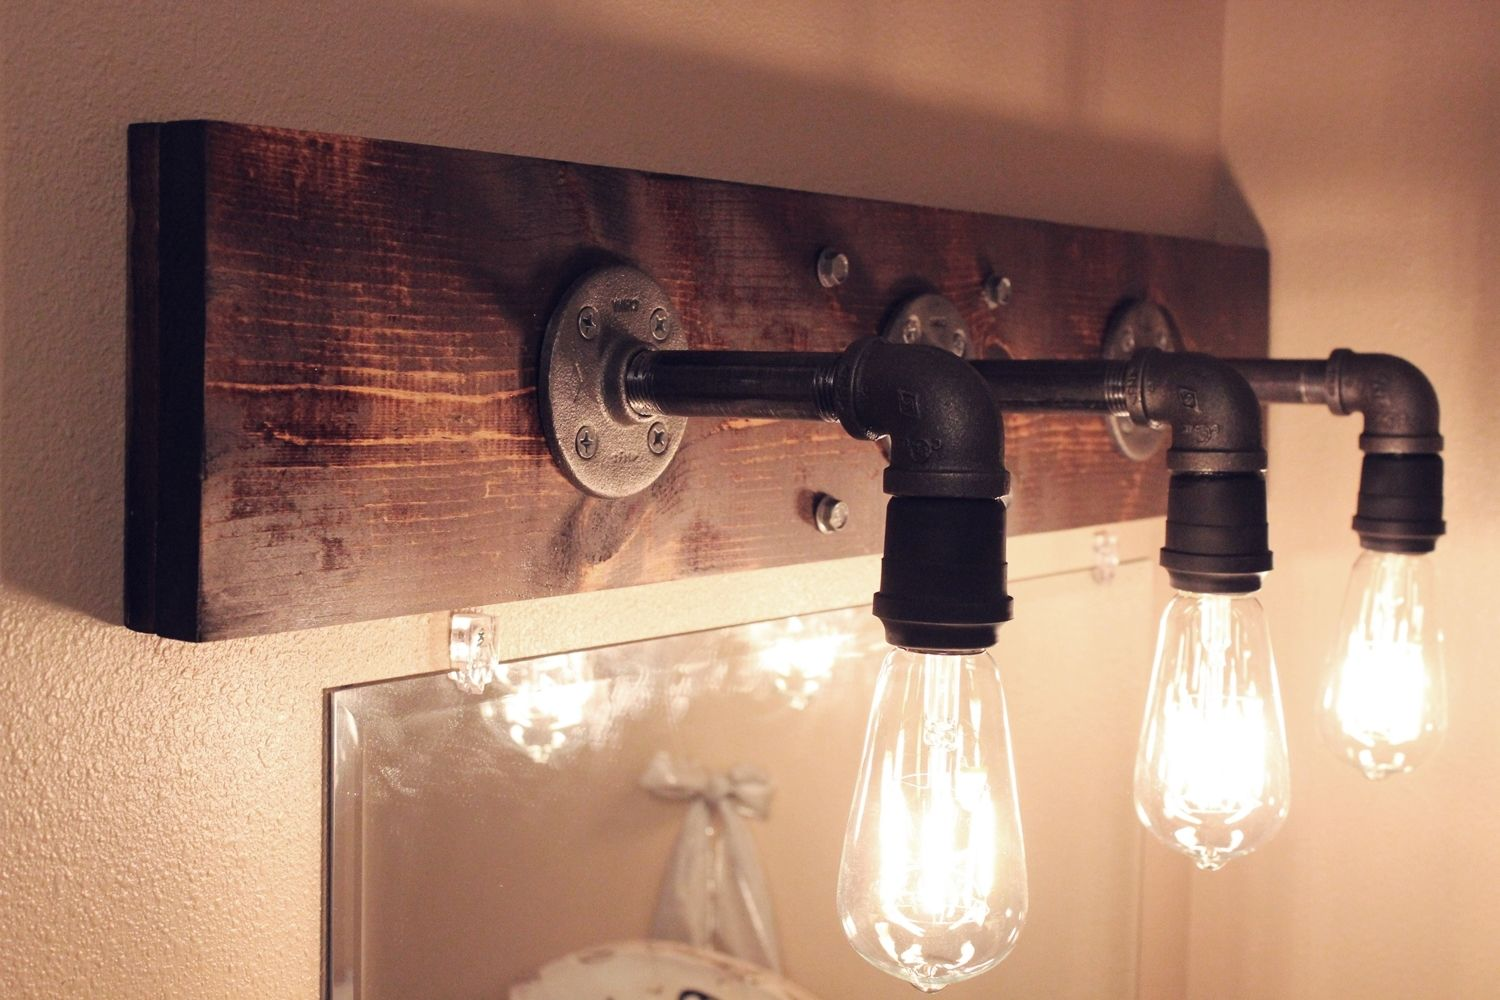 Superb DIY Industrial Bathroom Light Fixtures